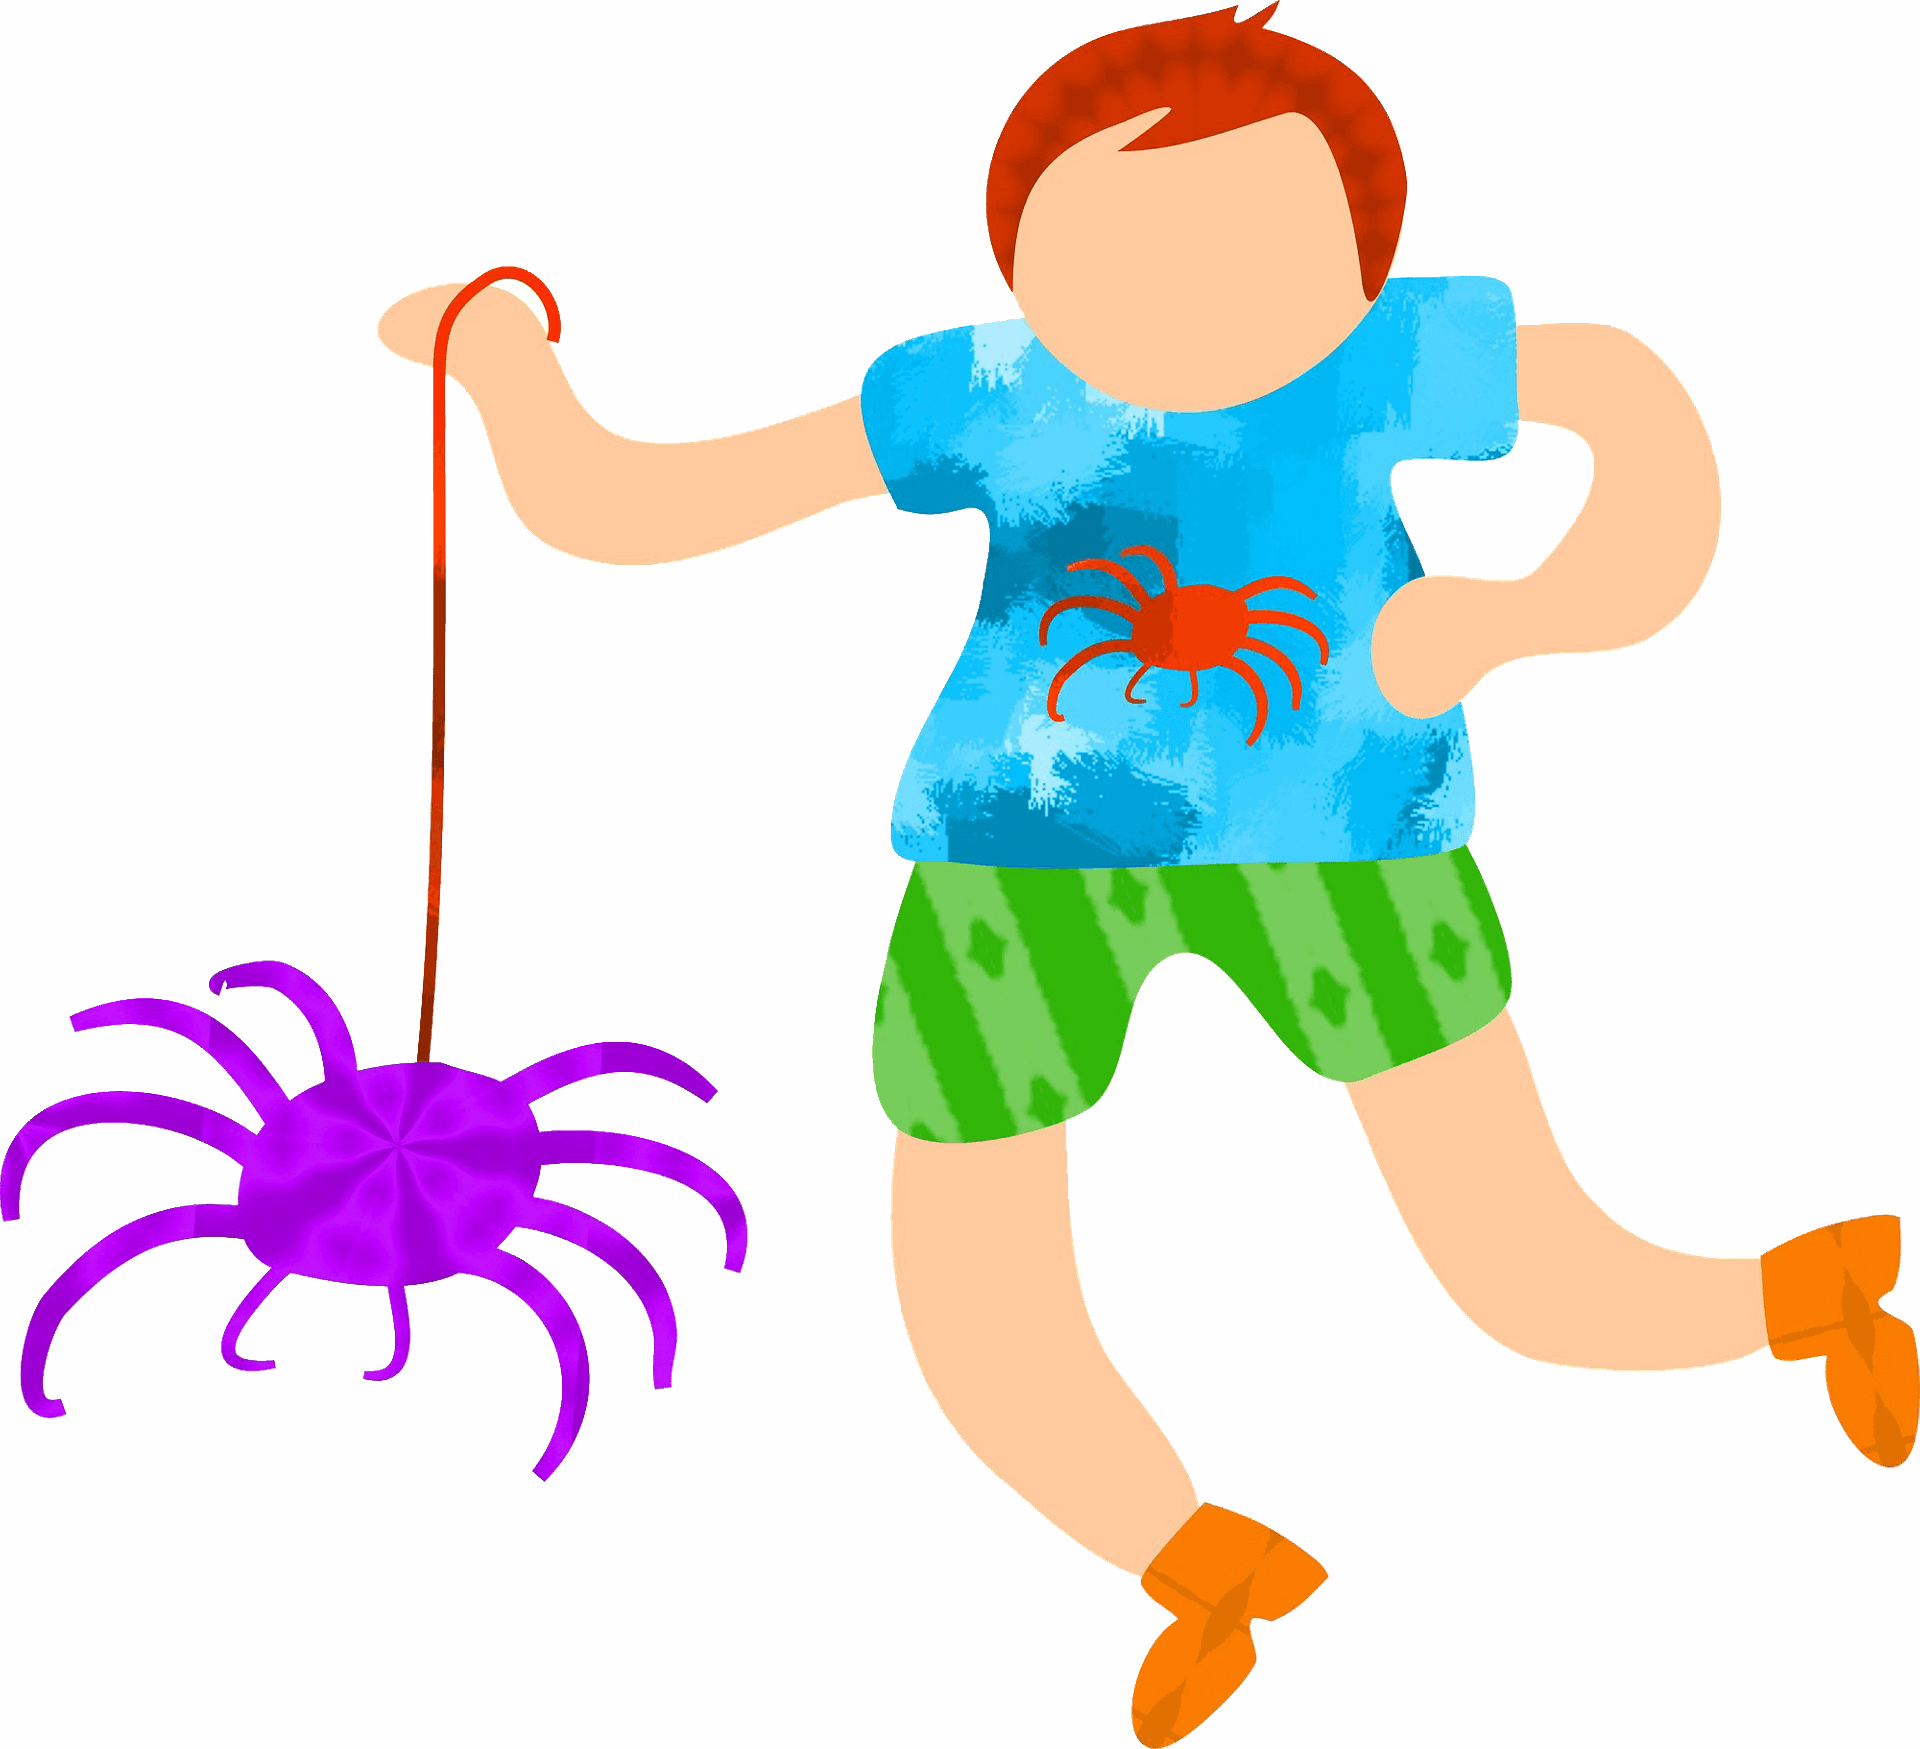 Cute spider clipart for kids free images - ClipartBarn